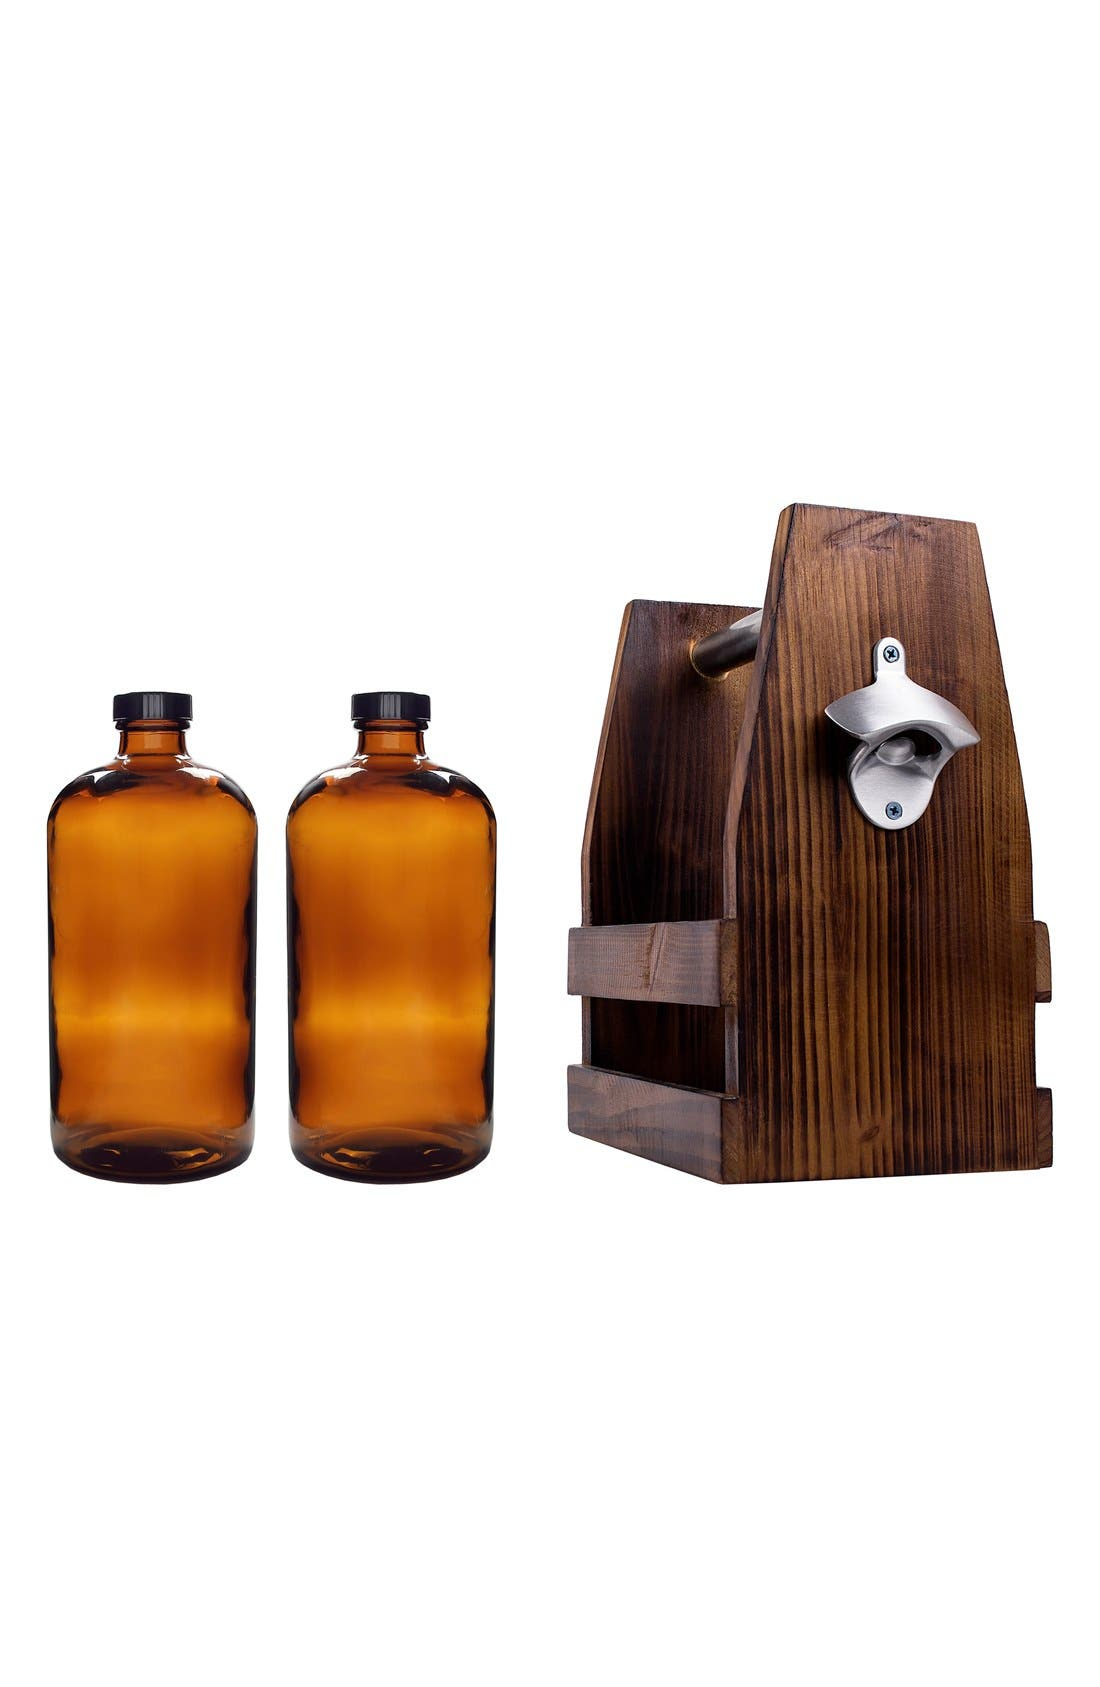 Personalized Craft Beer Carrier & Growlers,                         Main,                         color, 200